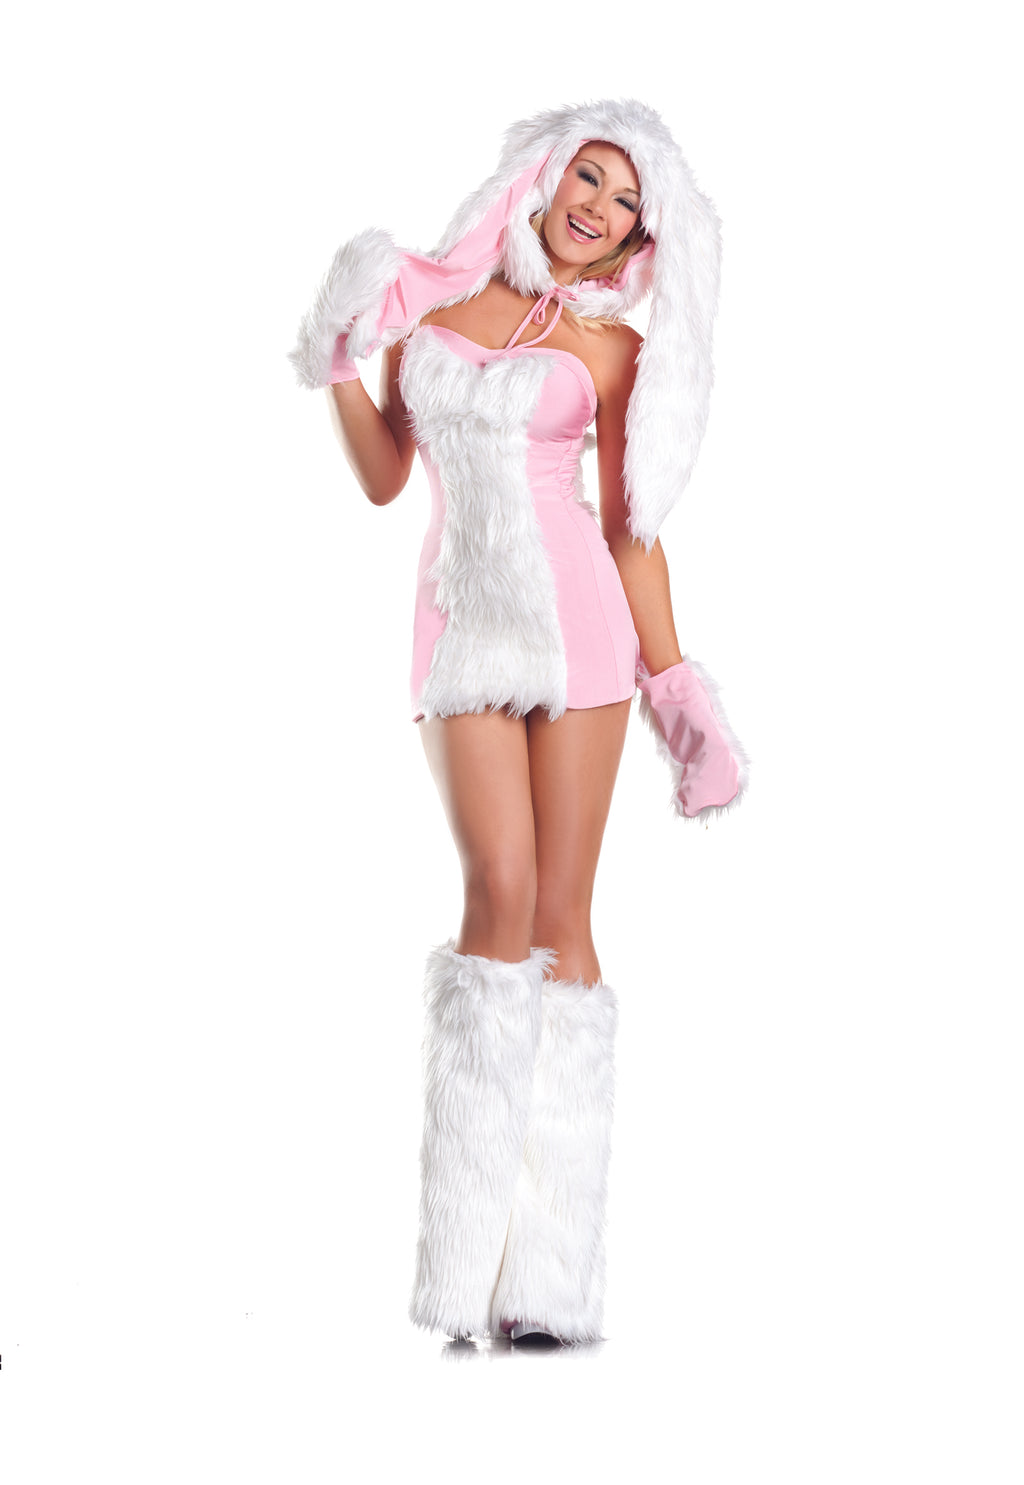 Adult-Women's-5-Piece-Sexy-Bunny-Halloween-Party-Costume-With-Hood-&-Leg-Warmers